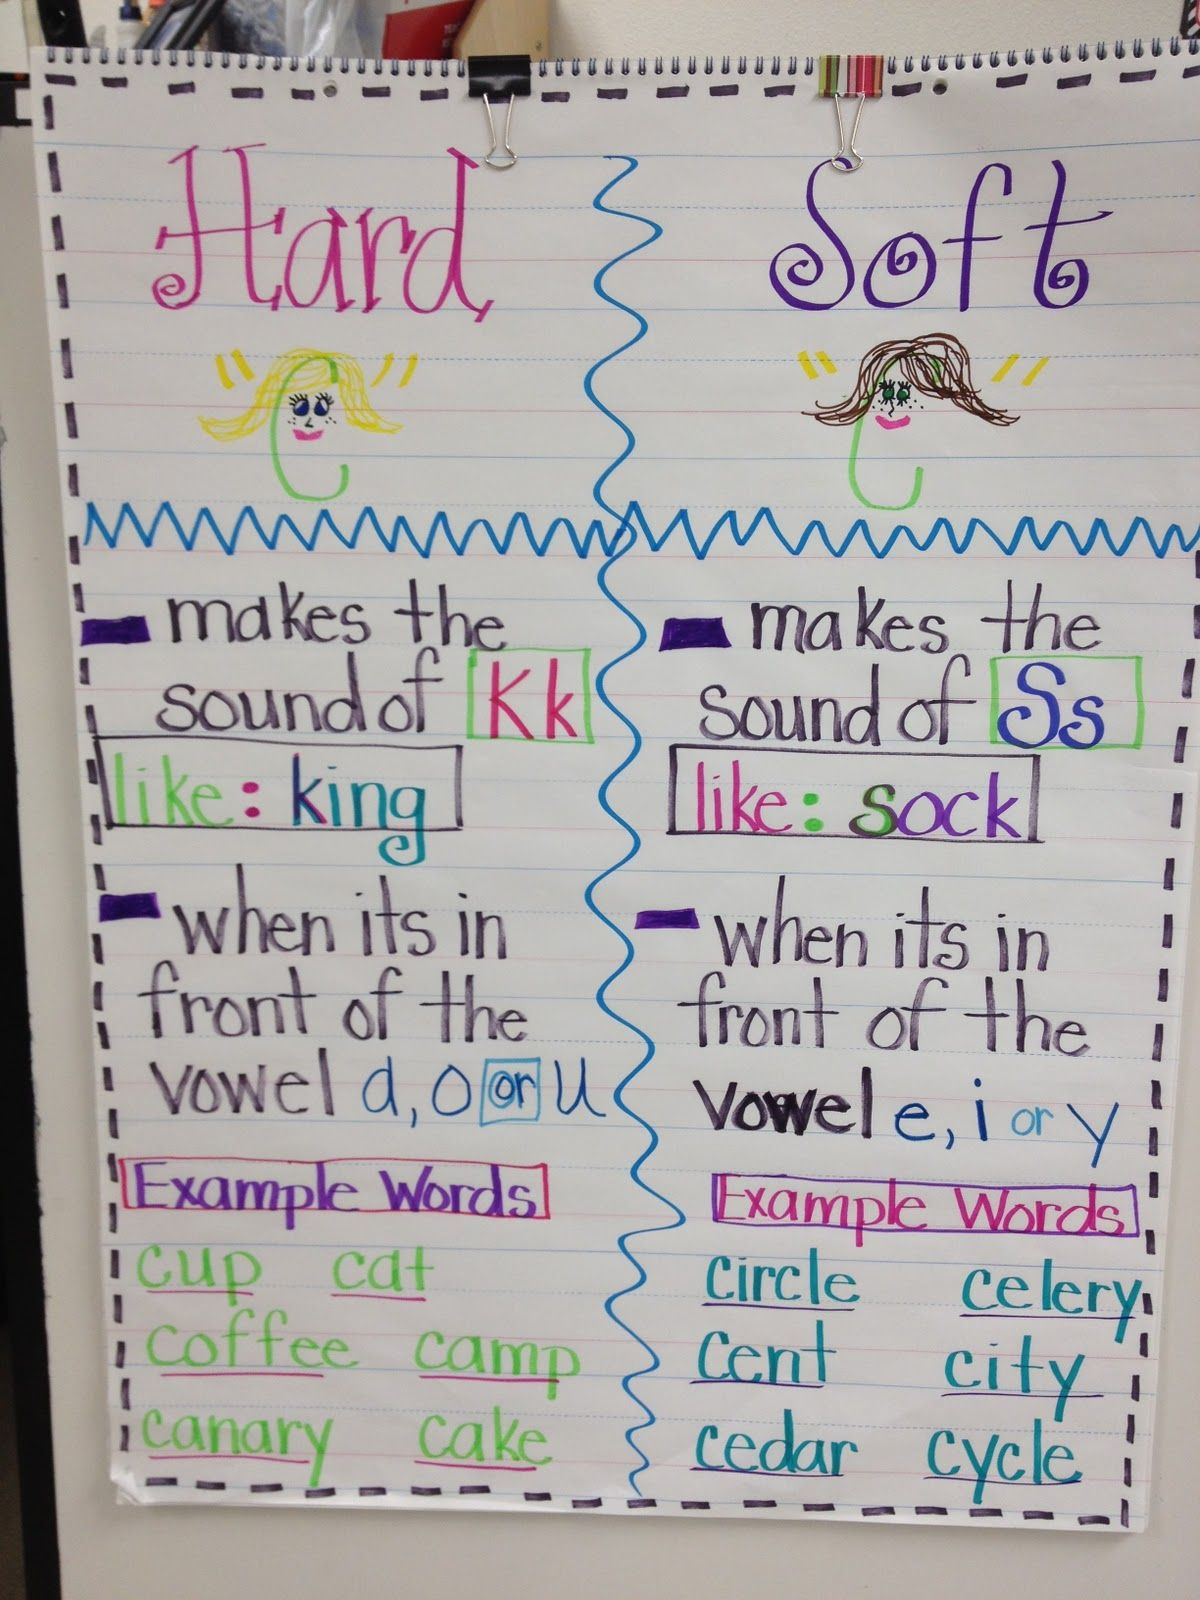 worksheet Soft G Sound Worksheets anchor charts hard and soft c like this but would give he example word